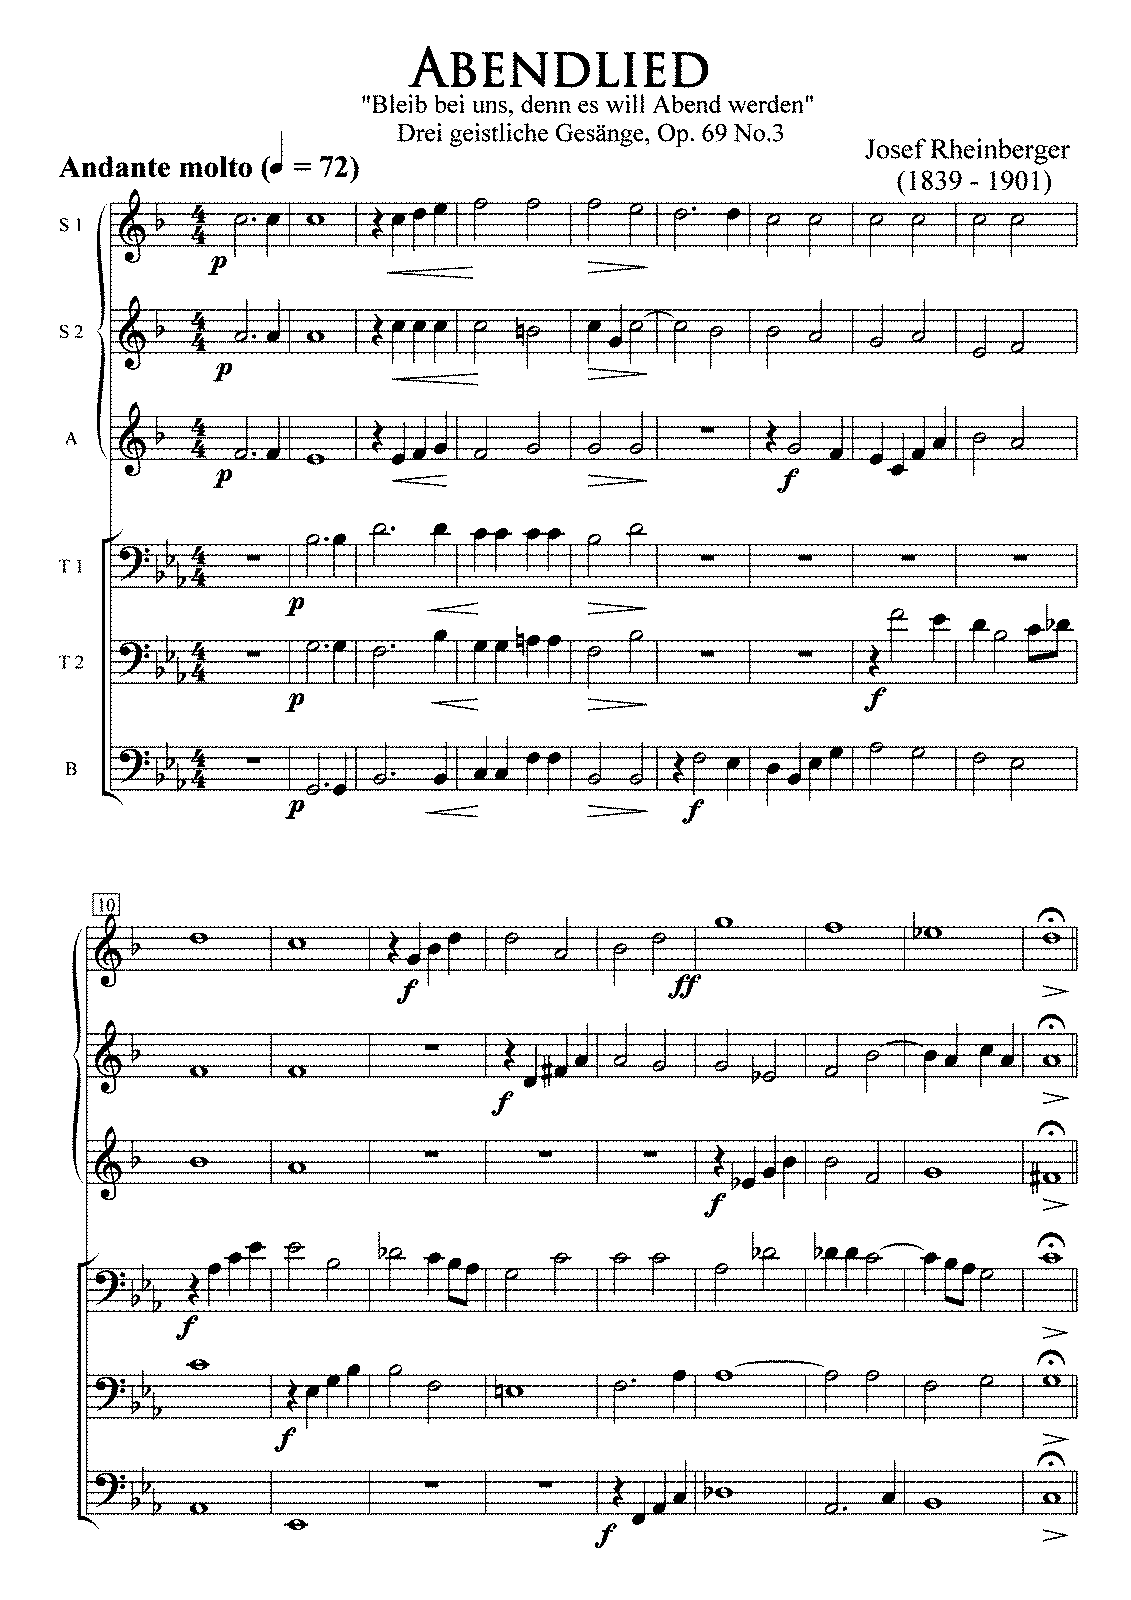 PMLP332832-Rheinberger Abendlied Full Score and Parts Trp in Bb.pdf